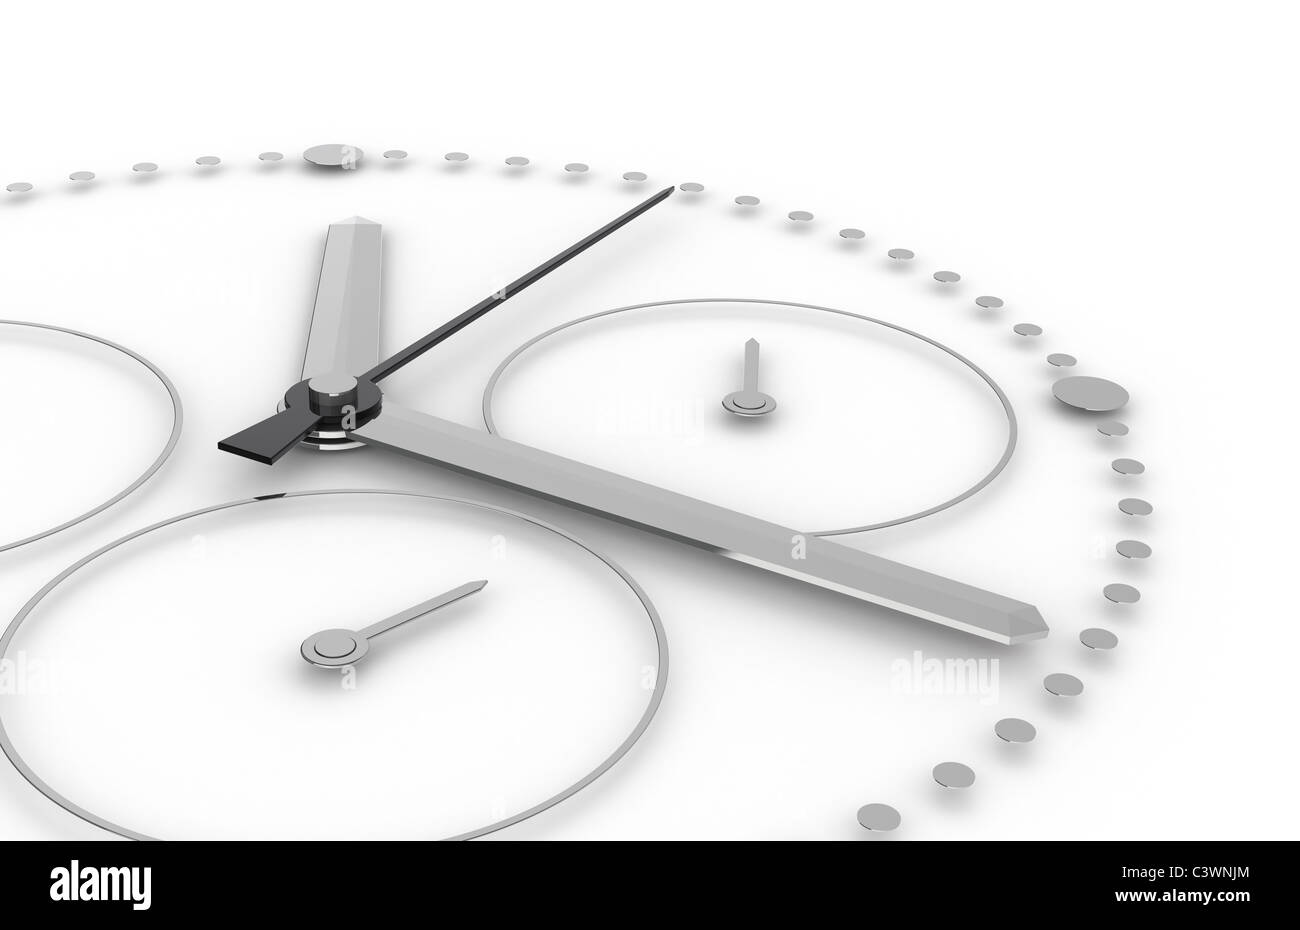 Time. Perspective view of a Chronograph Watch - Stock Image